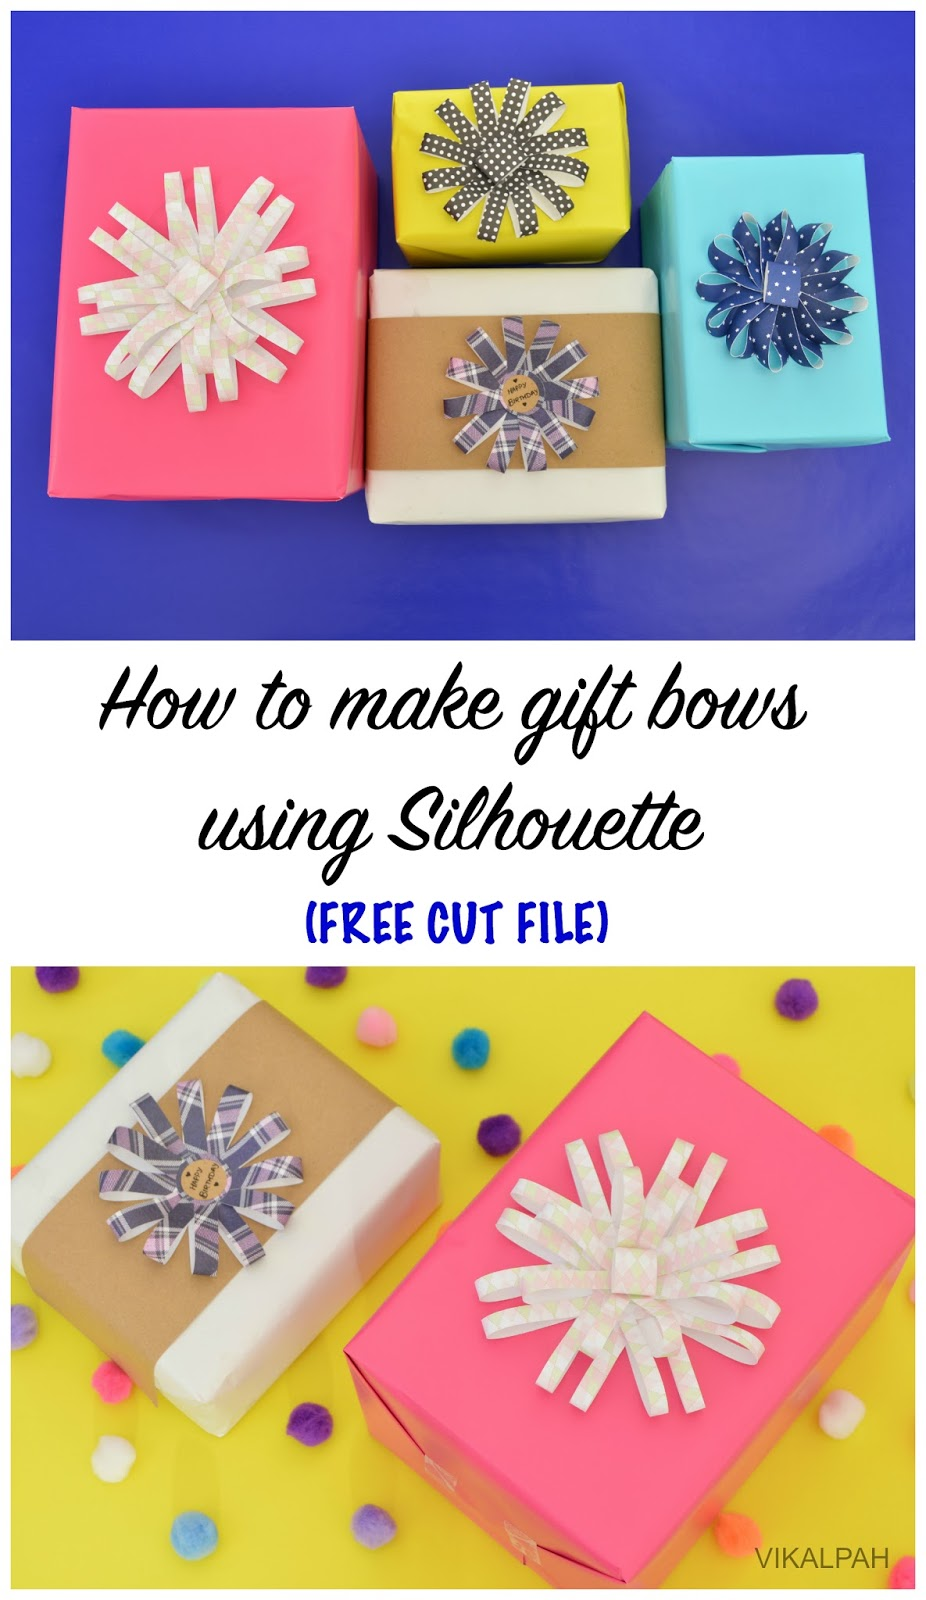 Vikalpah how to make gift bows using silhouette wednesday october 21 2015 negle Choice Image